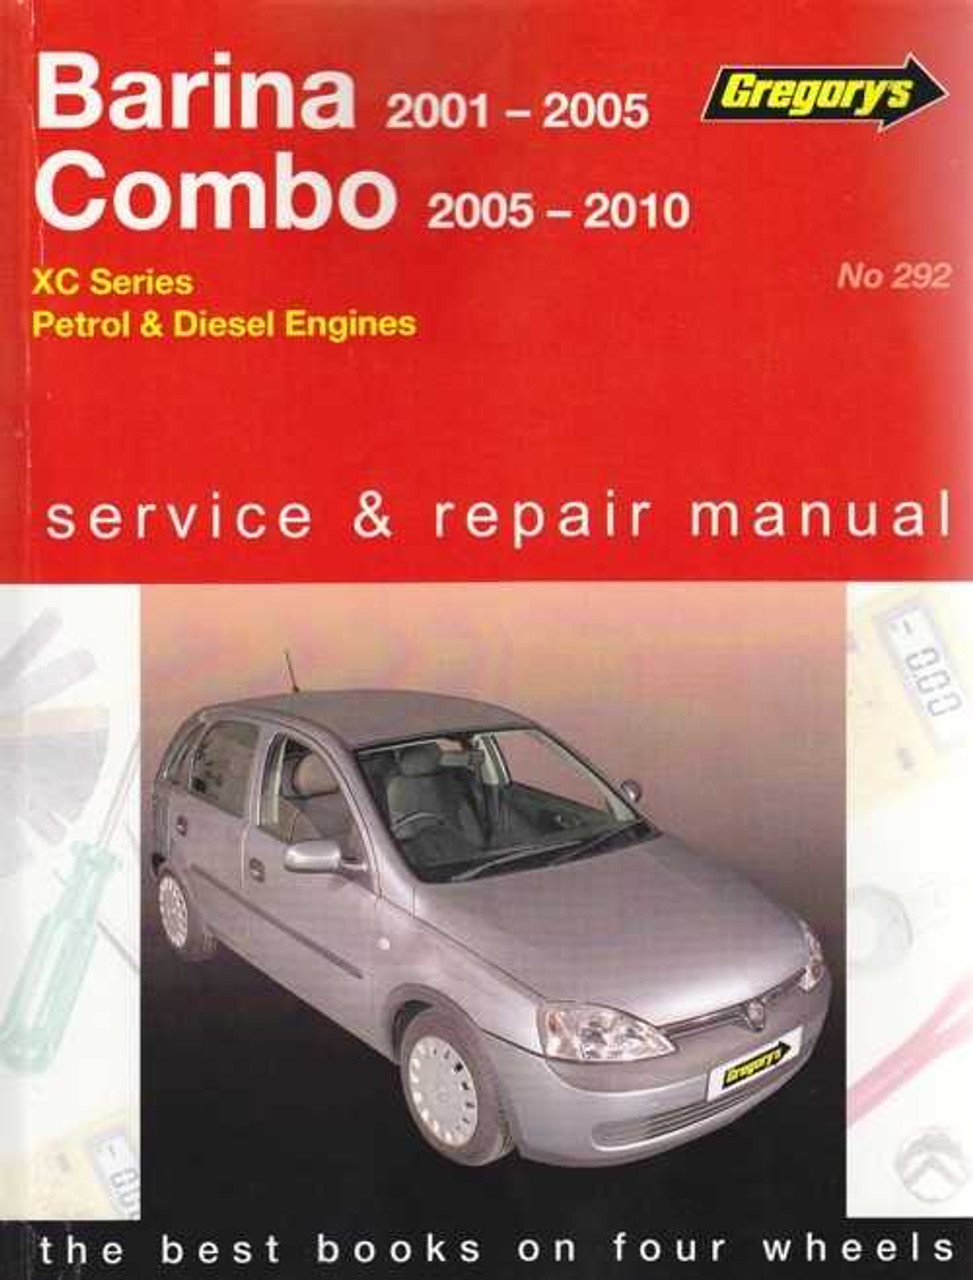 holden barina combo xc series petrol diesel 2001 2010 workshop rh automotobookshop com au holden barina owners manual download holden owners manual download